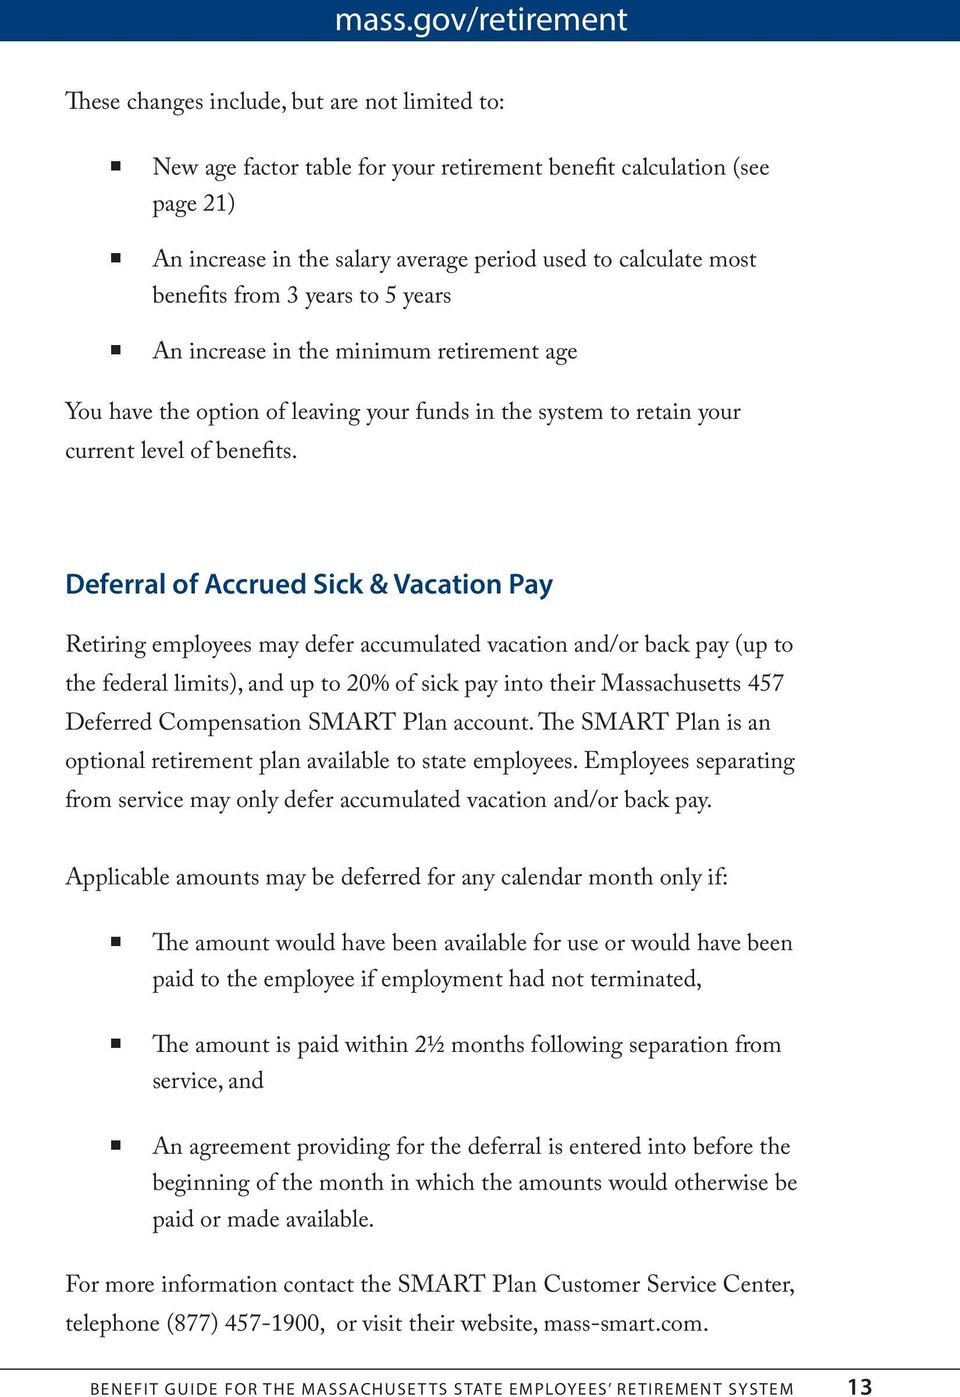 Deferral of Accrued Sick & Vacation Pay Retiring employees may defer accumulated vacation and/or back pay (up to the federal limits), and up to 20% of sick pay into their Massachusetts 457 Deferred